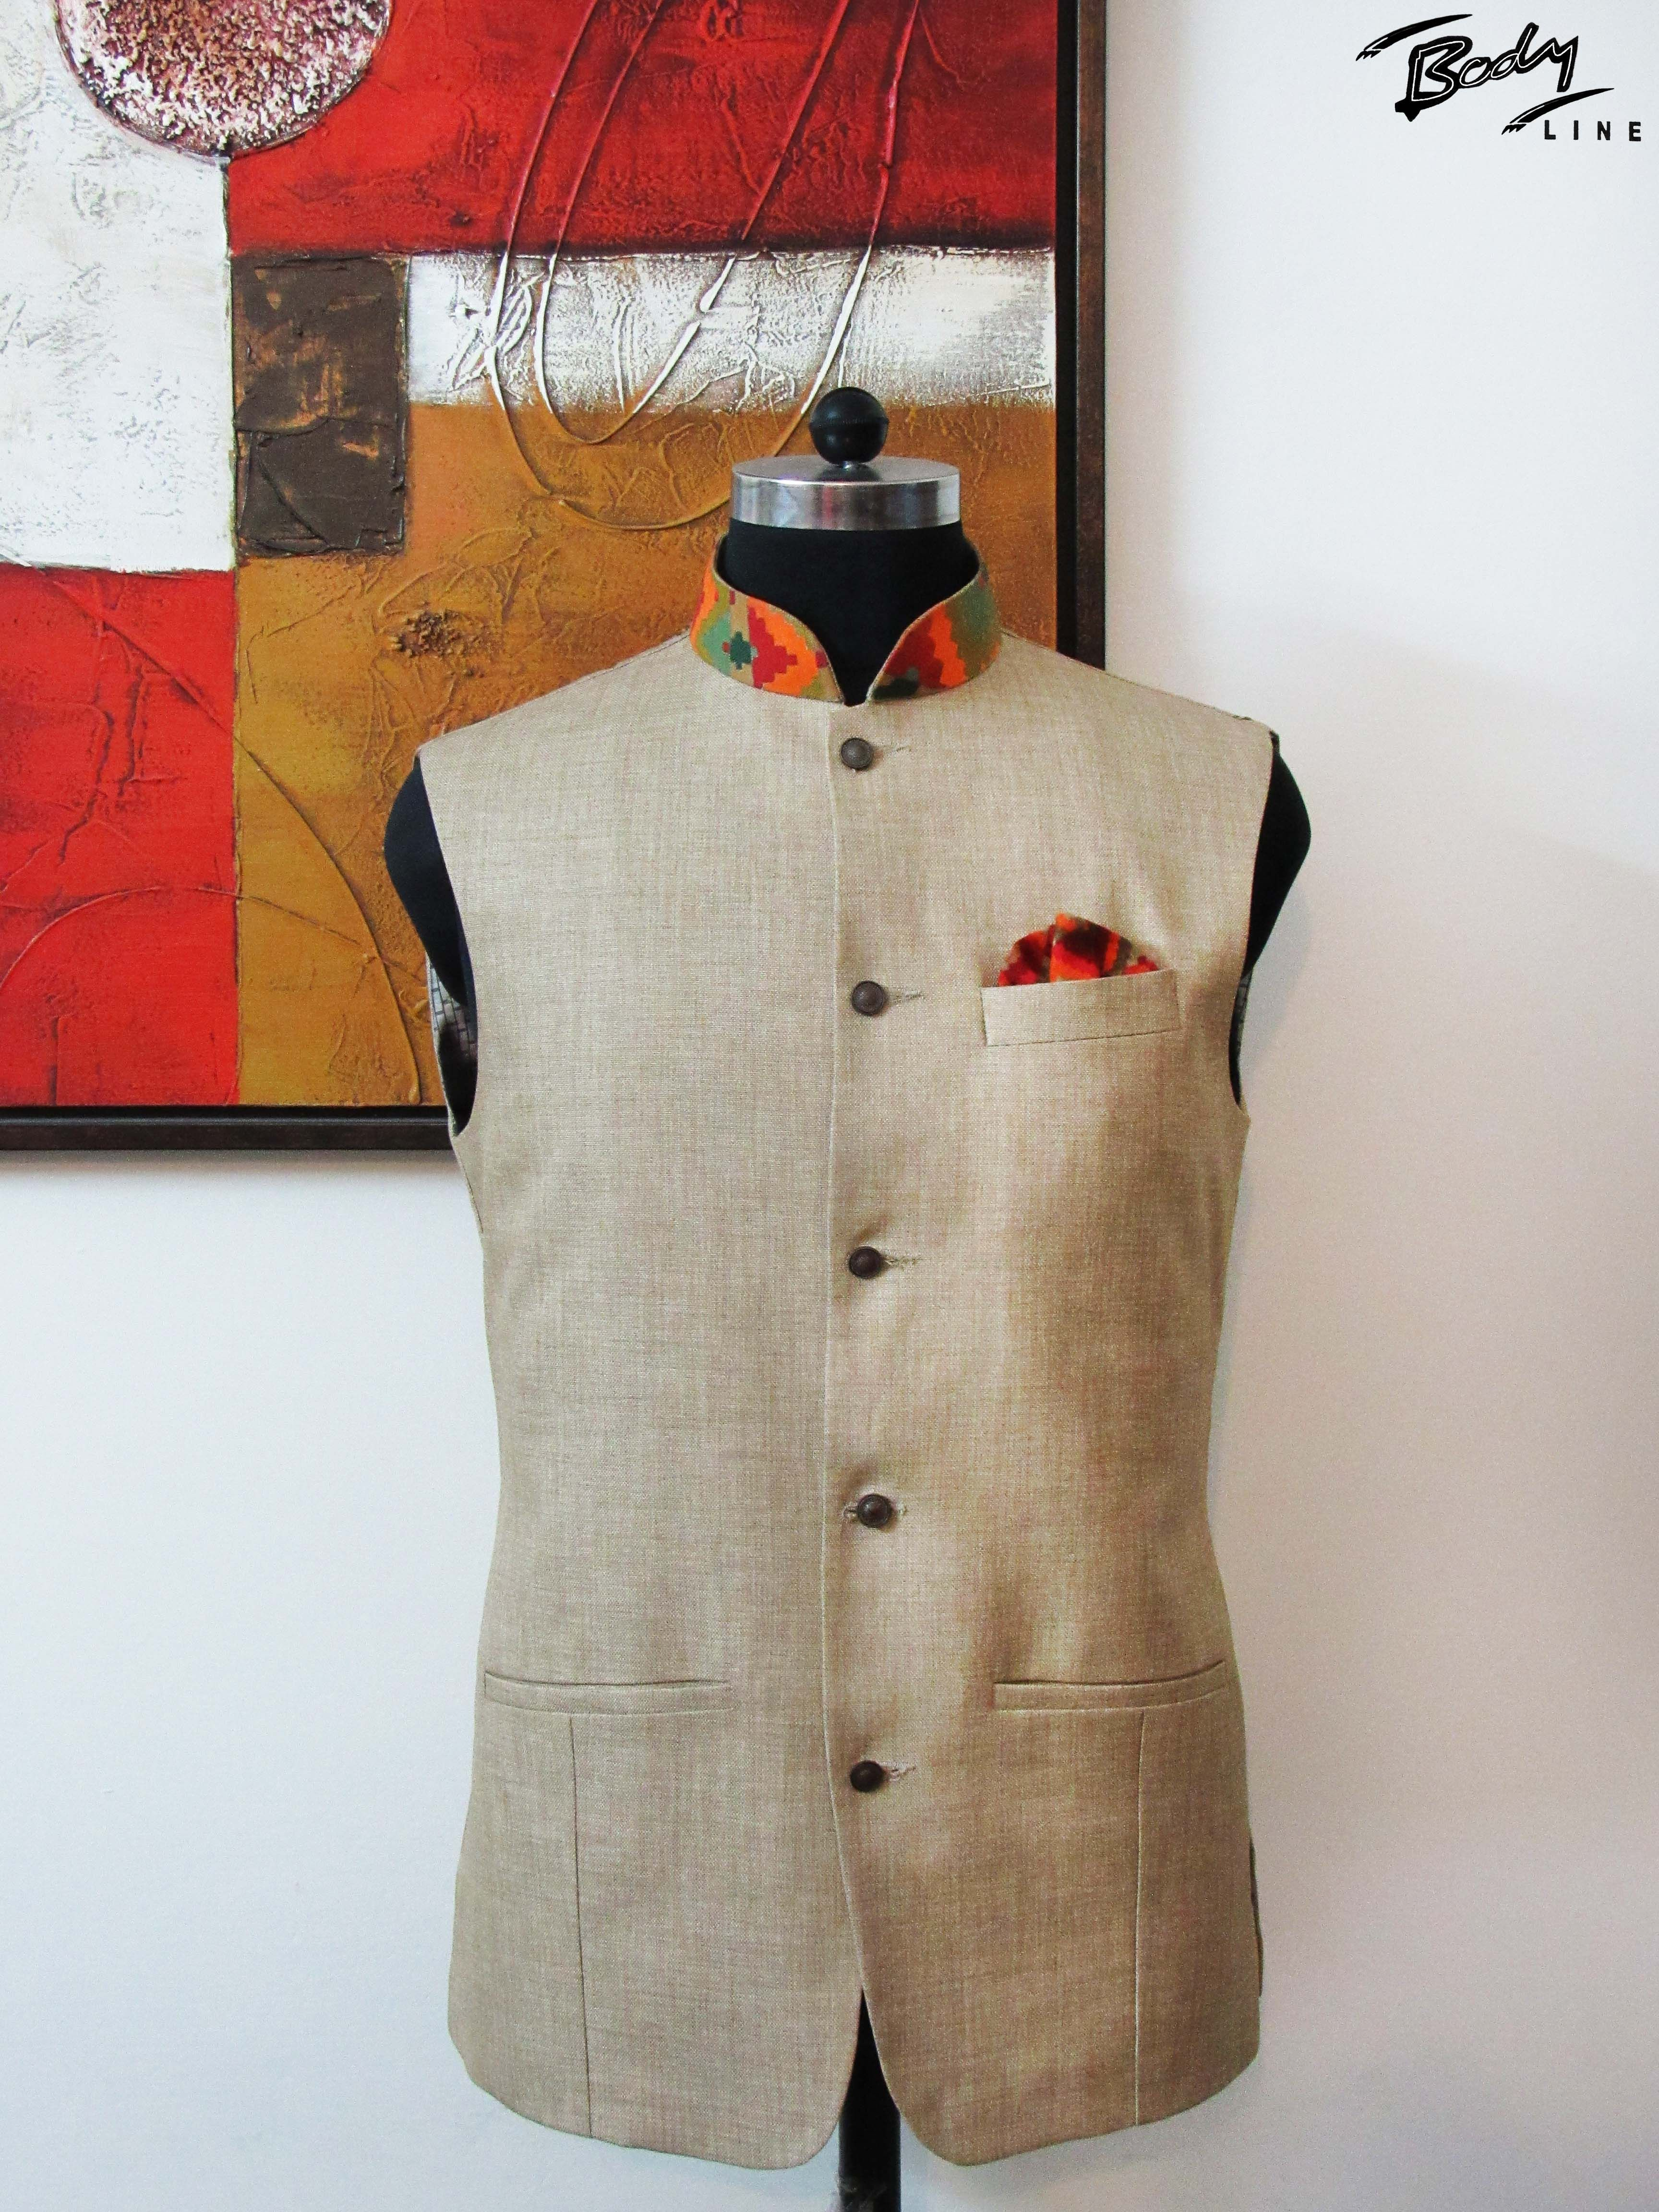 Made with jute this nehru jacket has an interesting twist provided